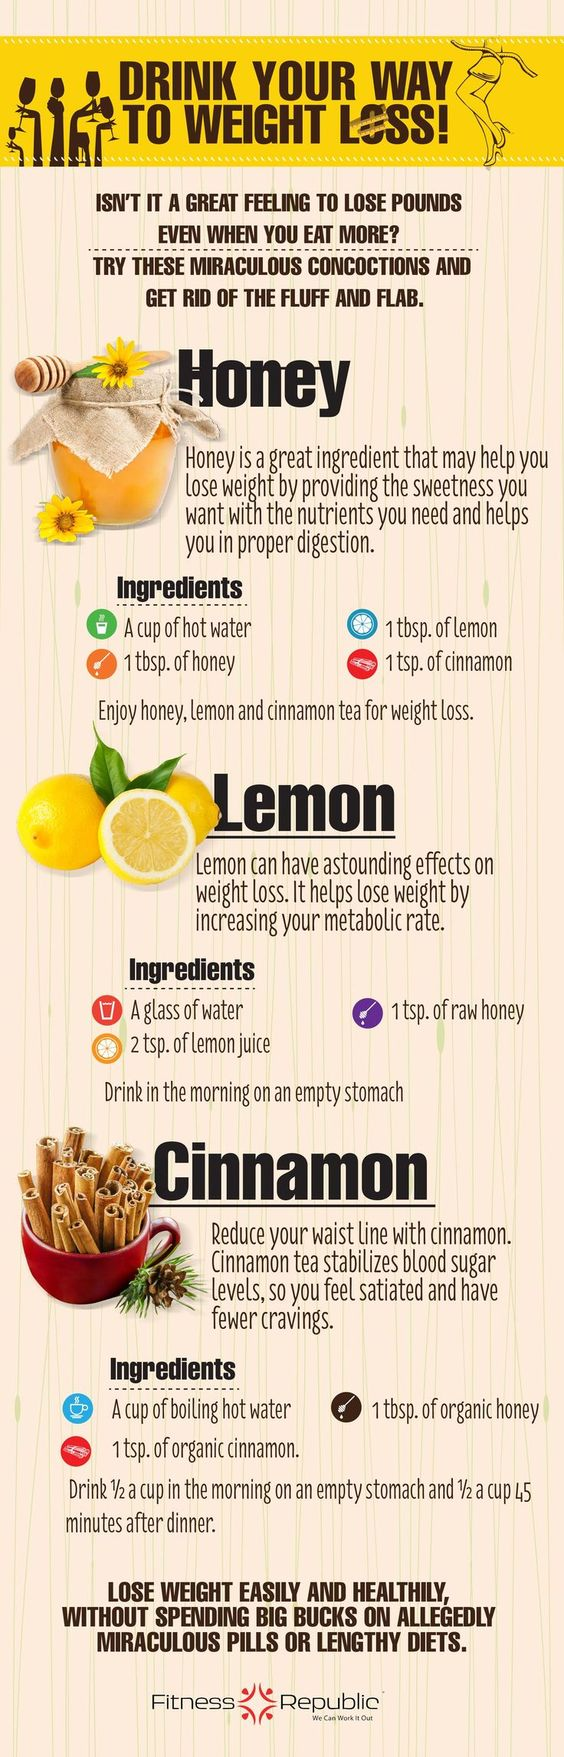 Ingredients for burning belly fat